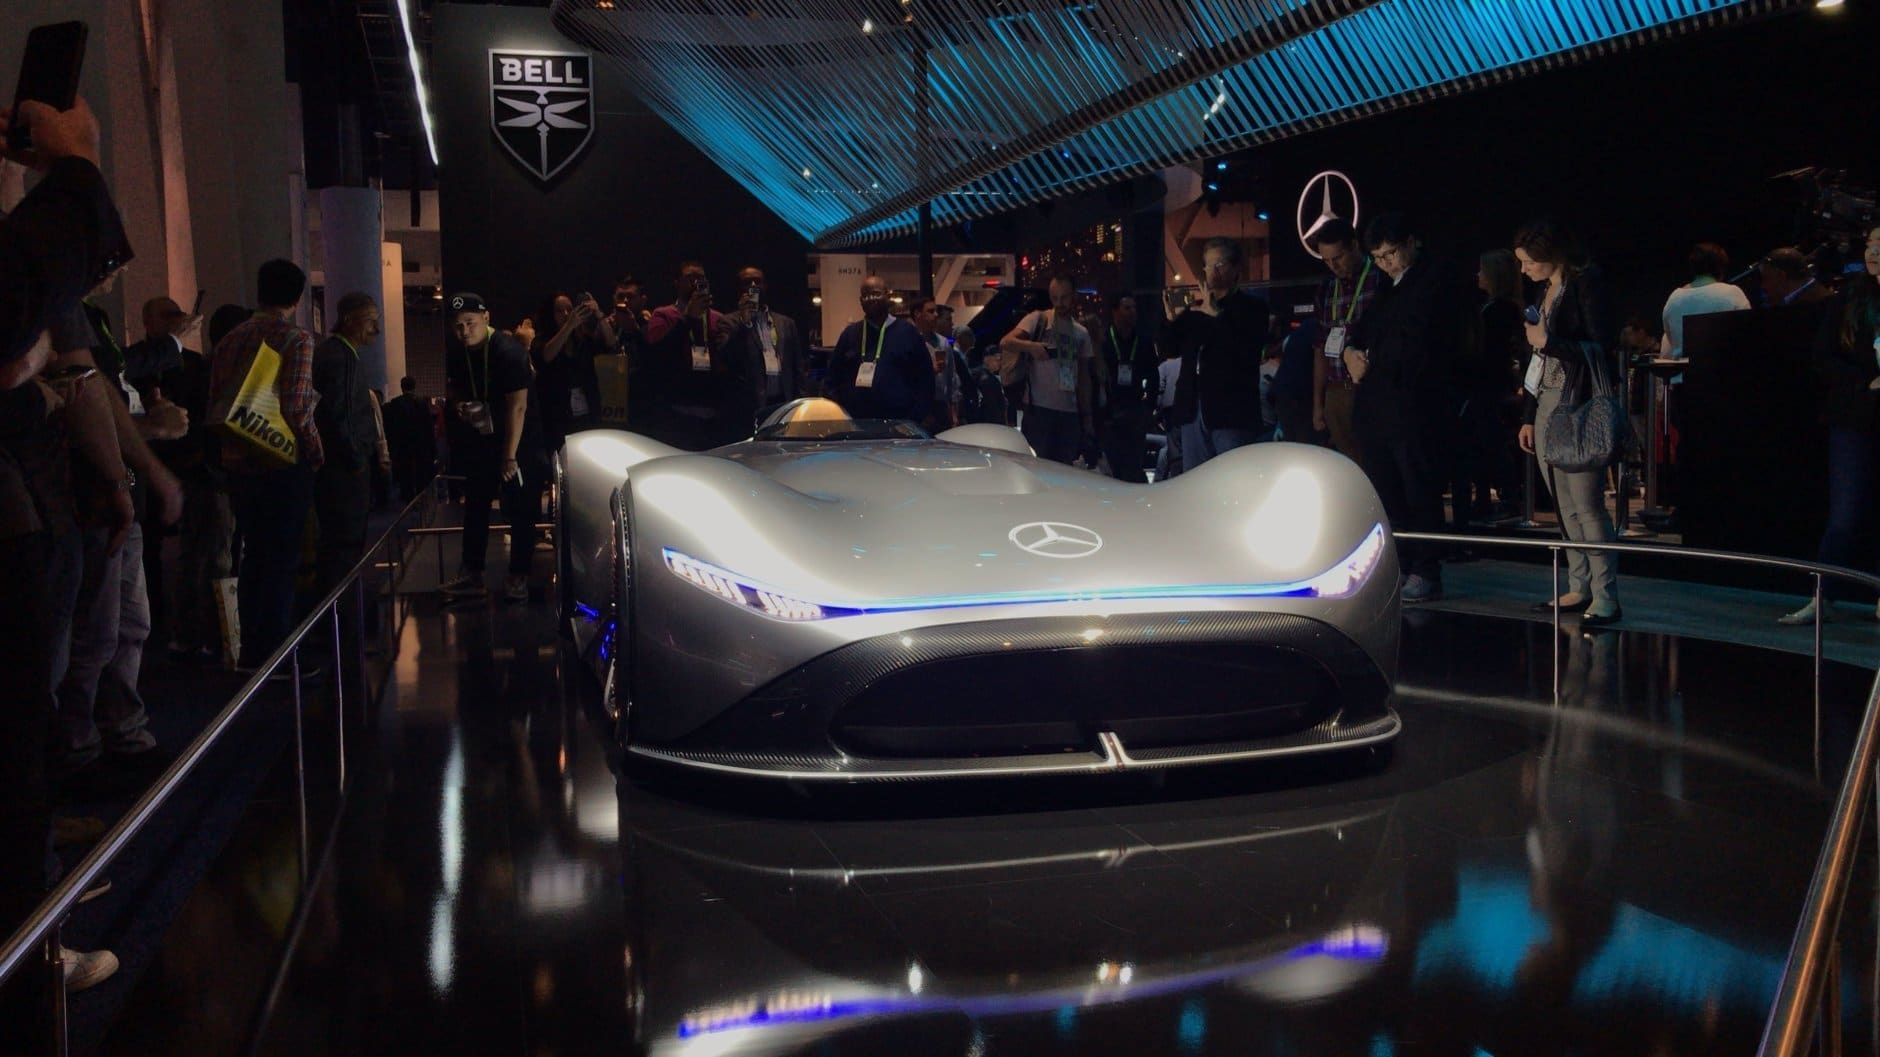 Mercedes unveils its latest cutting-edge vehicle at CES. (Heather Mahoney)